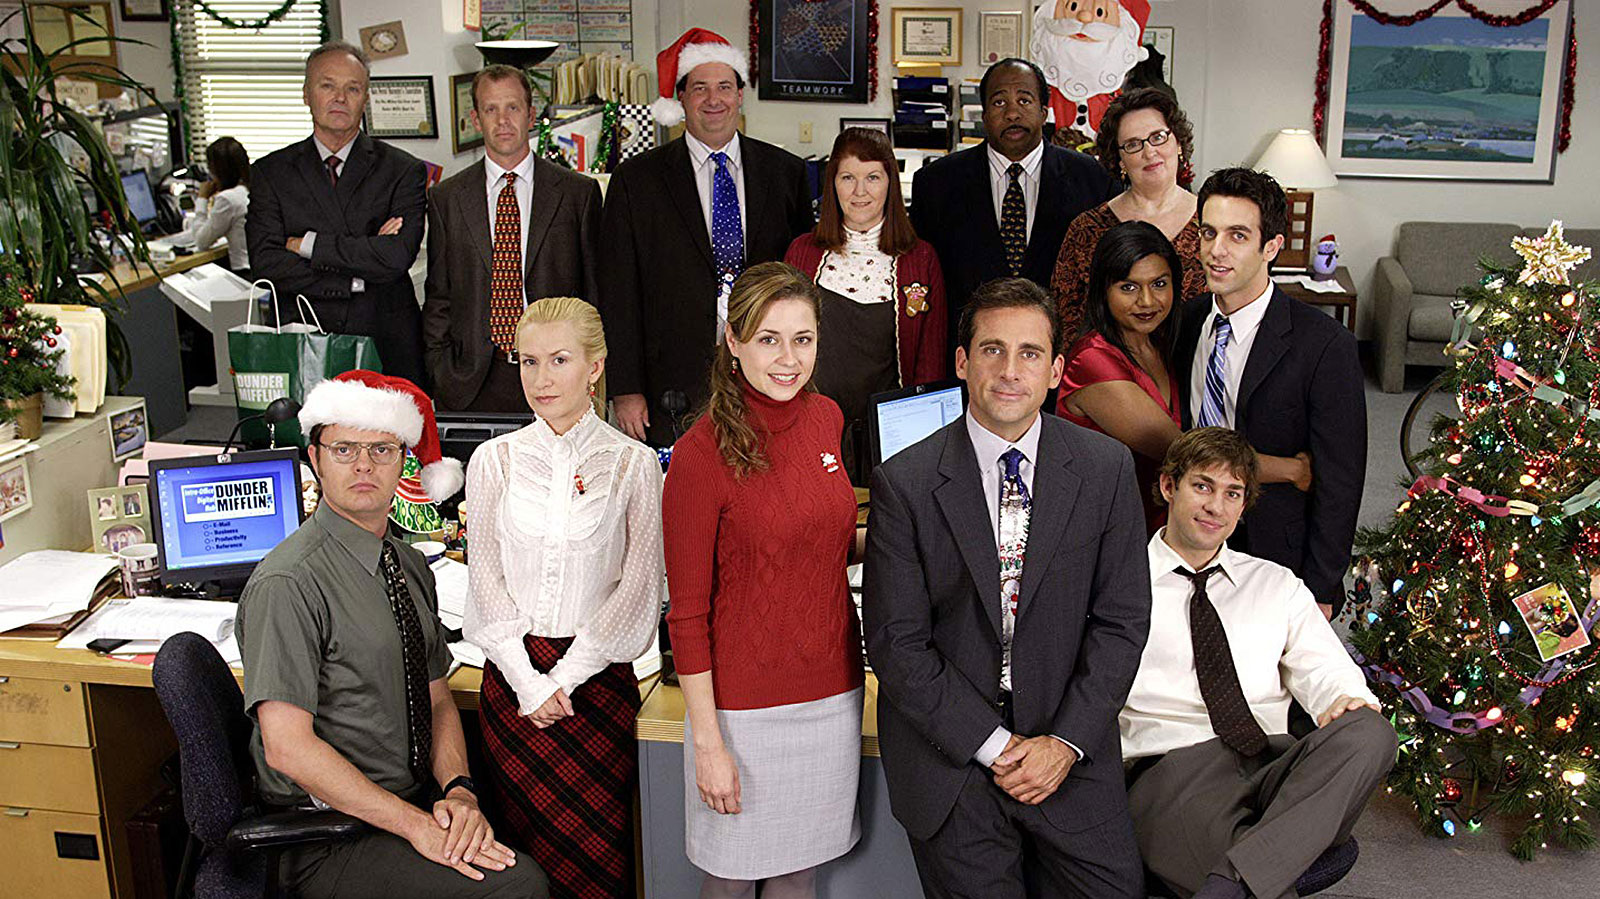 A complete guide to every line of dialogue spoken on 'The Office'